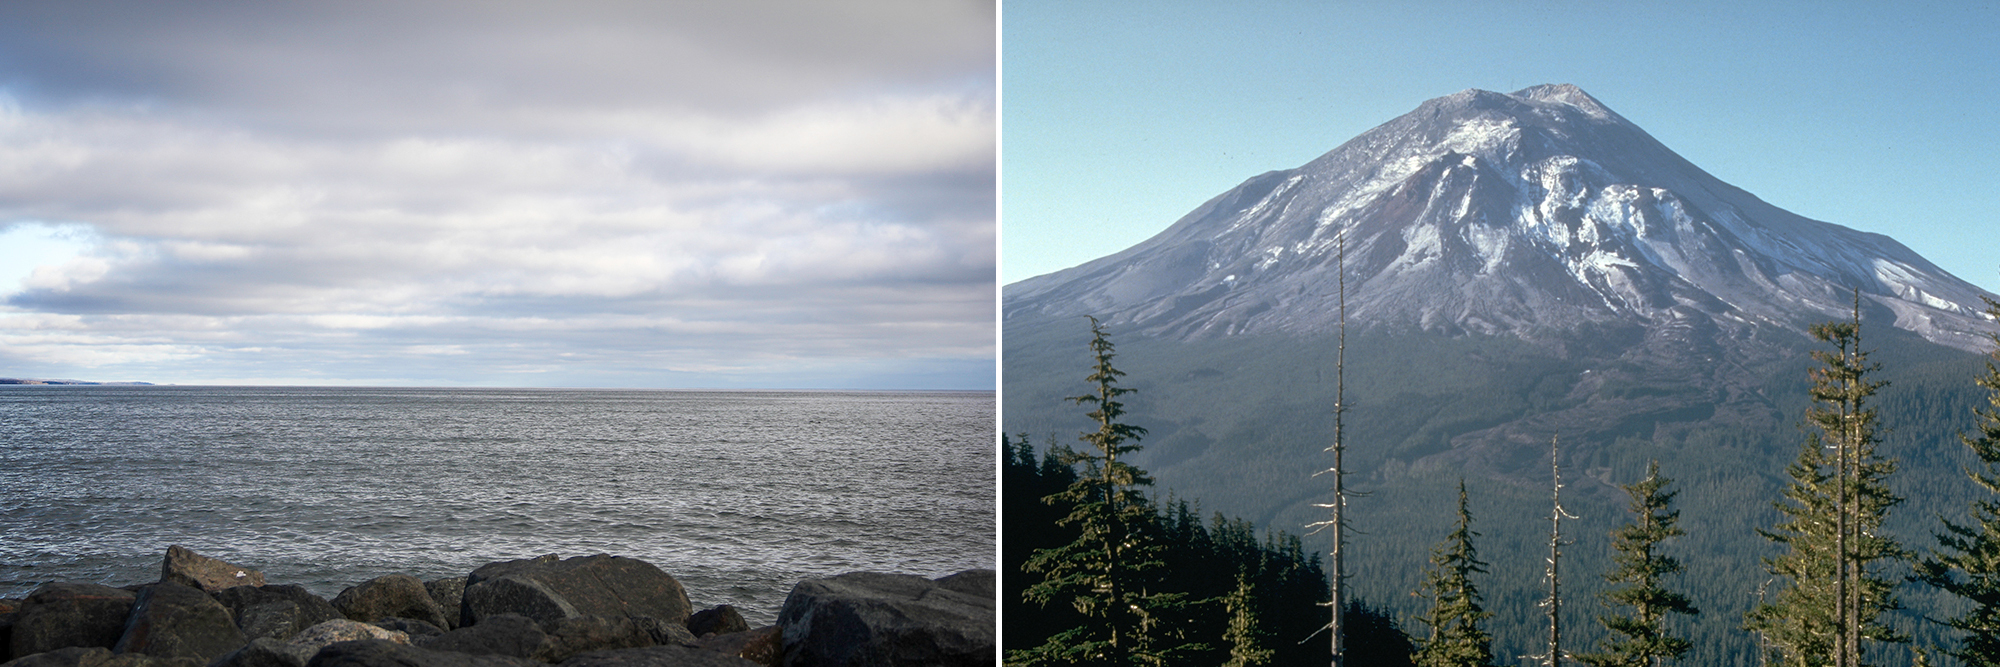 Lake Superior, on the left, and Mount St. Helens respective Twitter accounts exchanged a somewhat heated barrage of tweets // Lake Superior photo by Brian Kaufenberg; Mount St. Helens photo by Harry Glicken USGS CVO